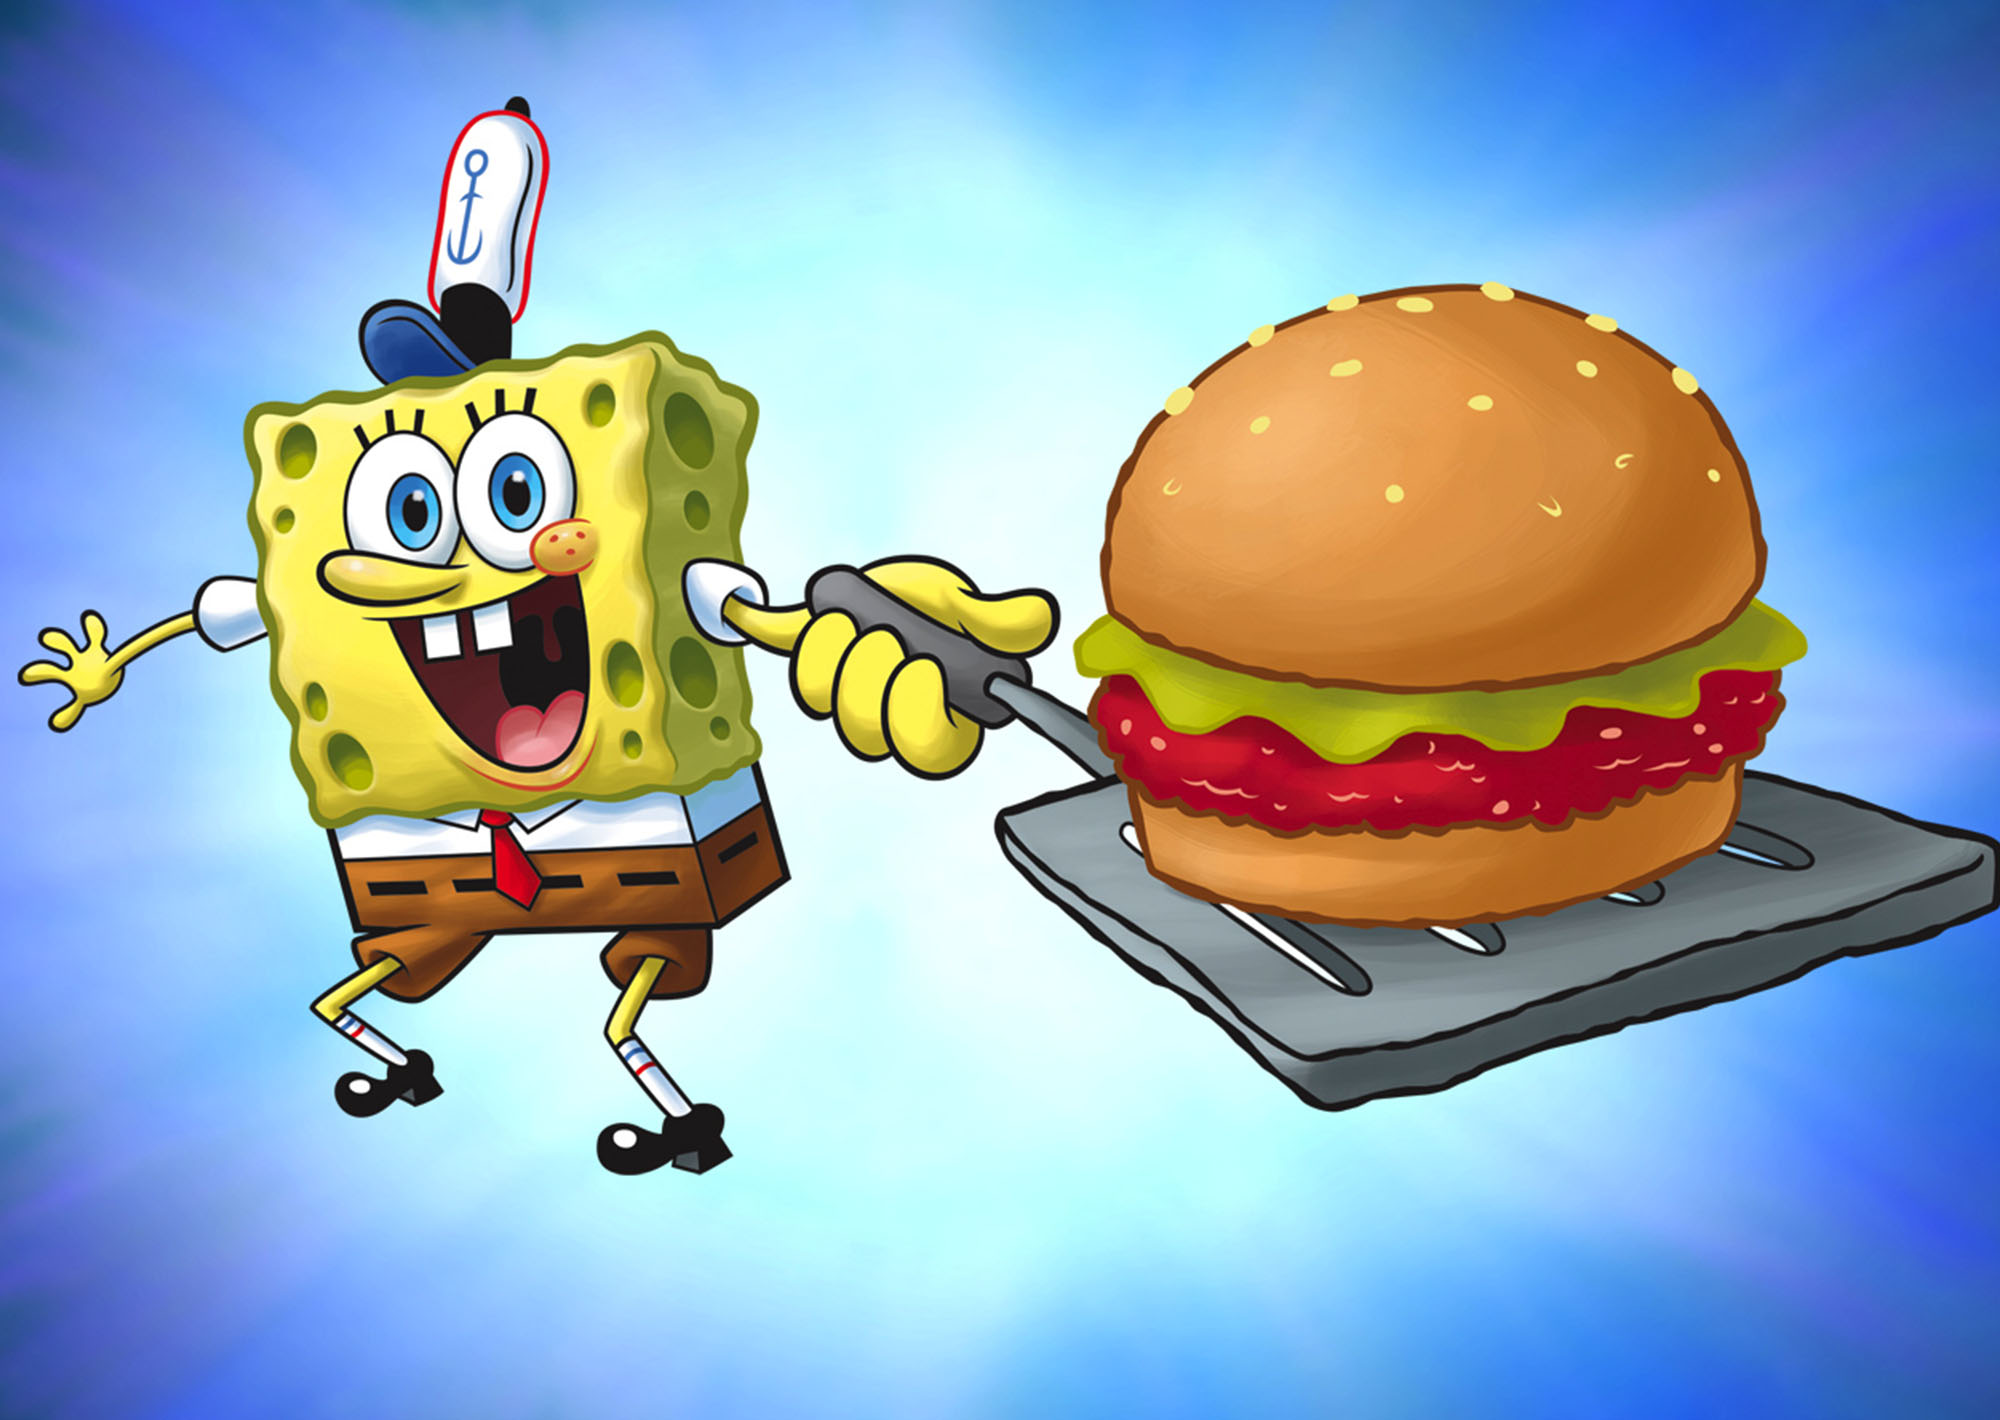 spongebob squarepants (nickelodeon)